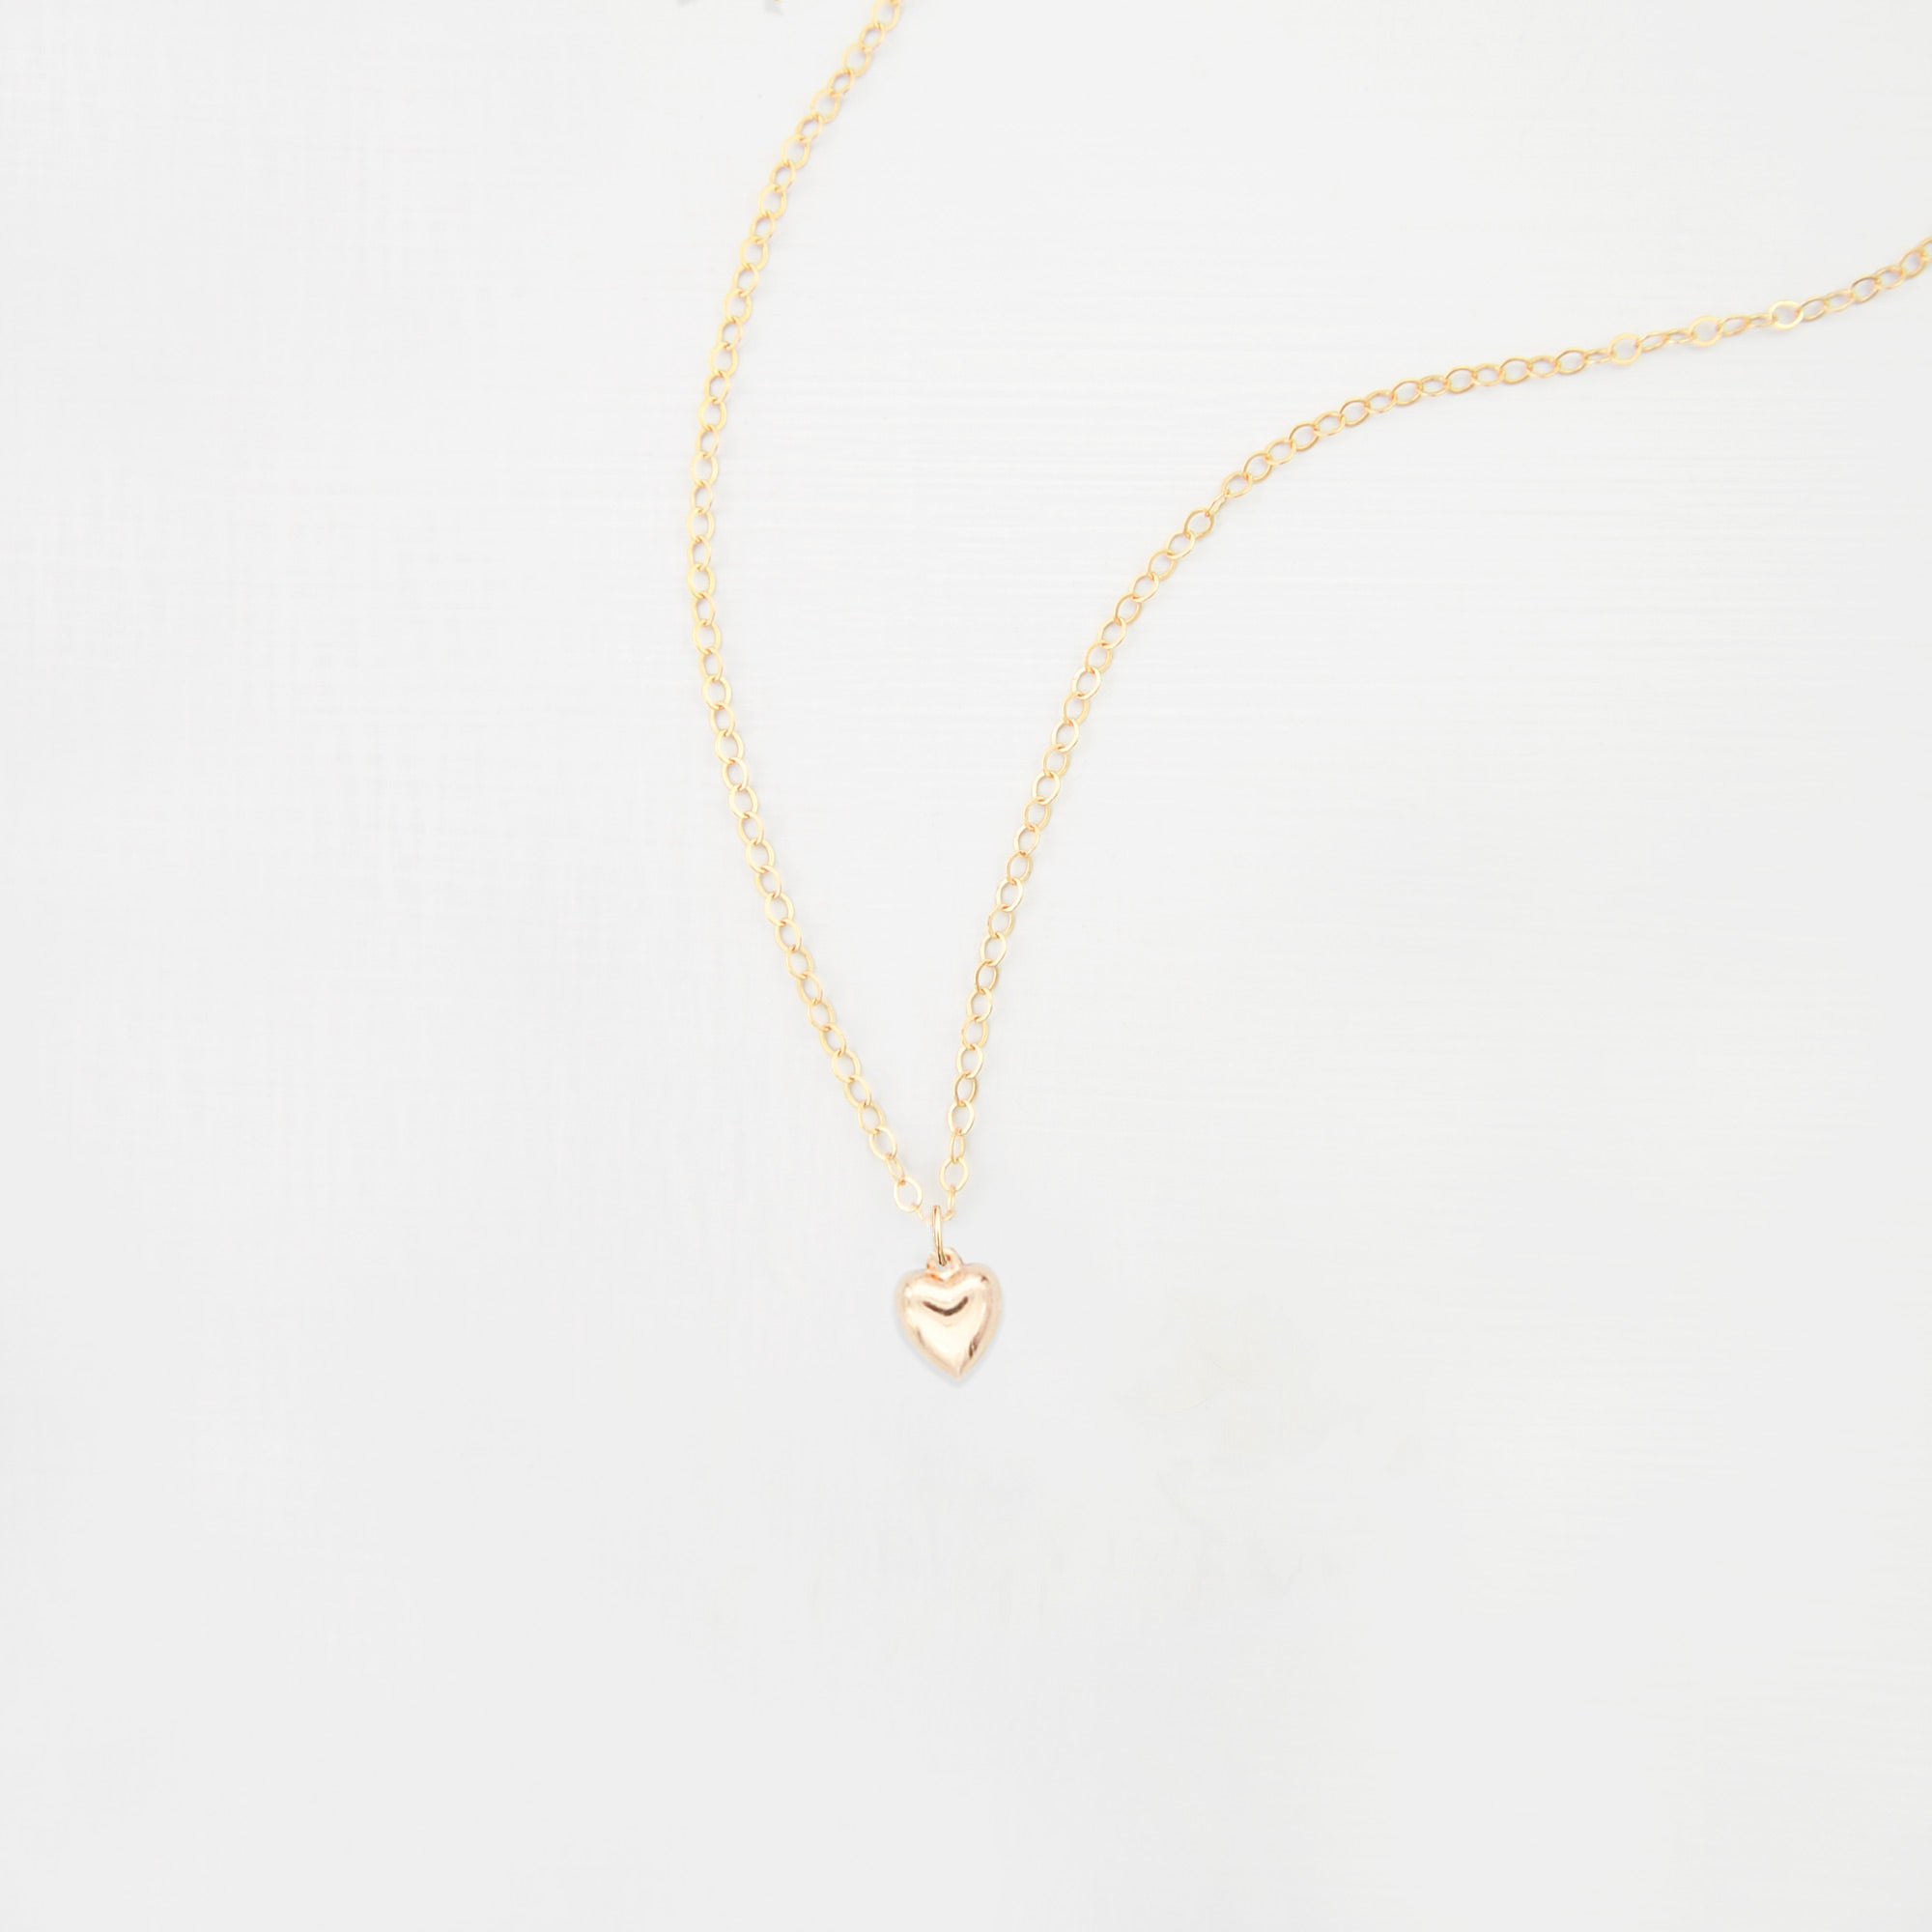 Heart charm necklace 'Ari'